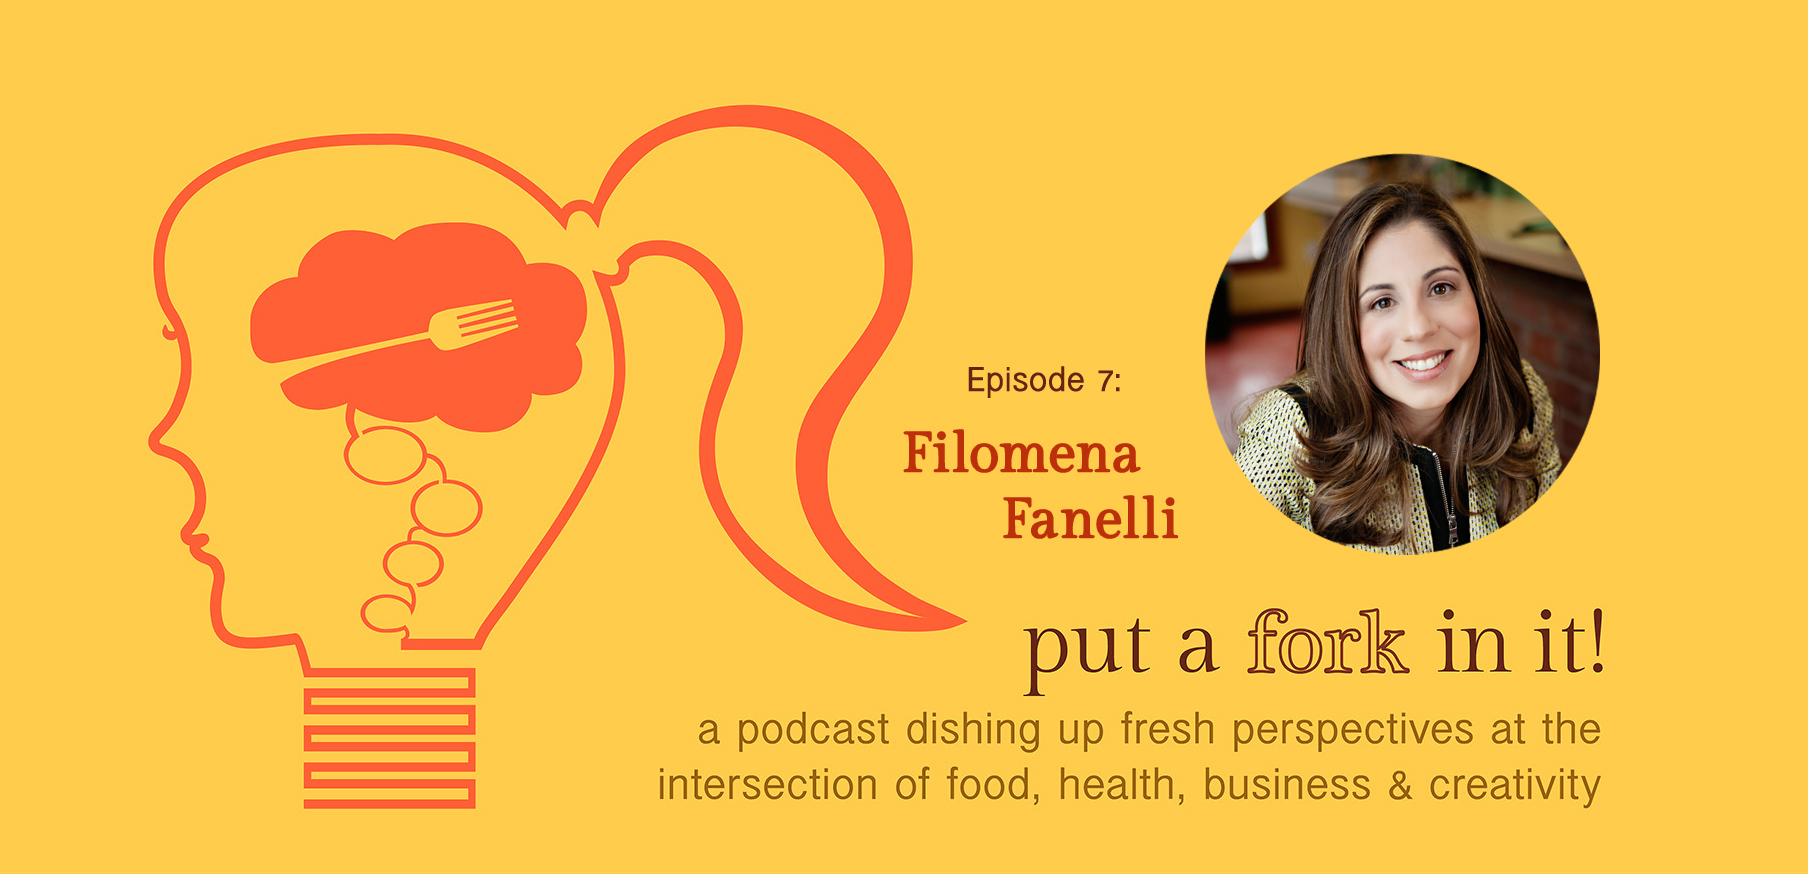 PAFII Episode 7: Filomena Fanelli, Founder & CEO of Impact PR & Communications